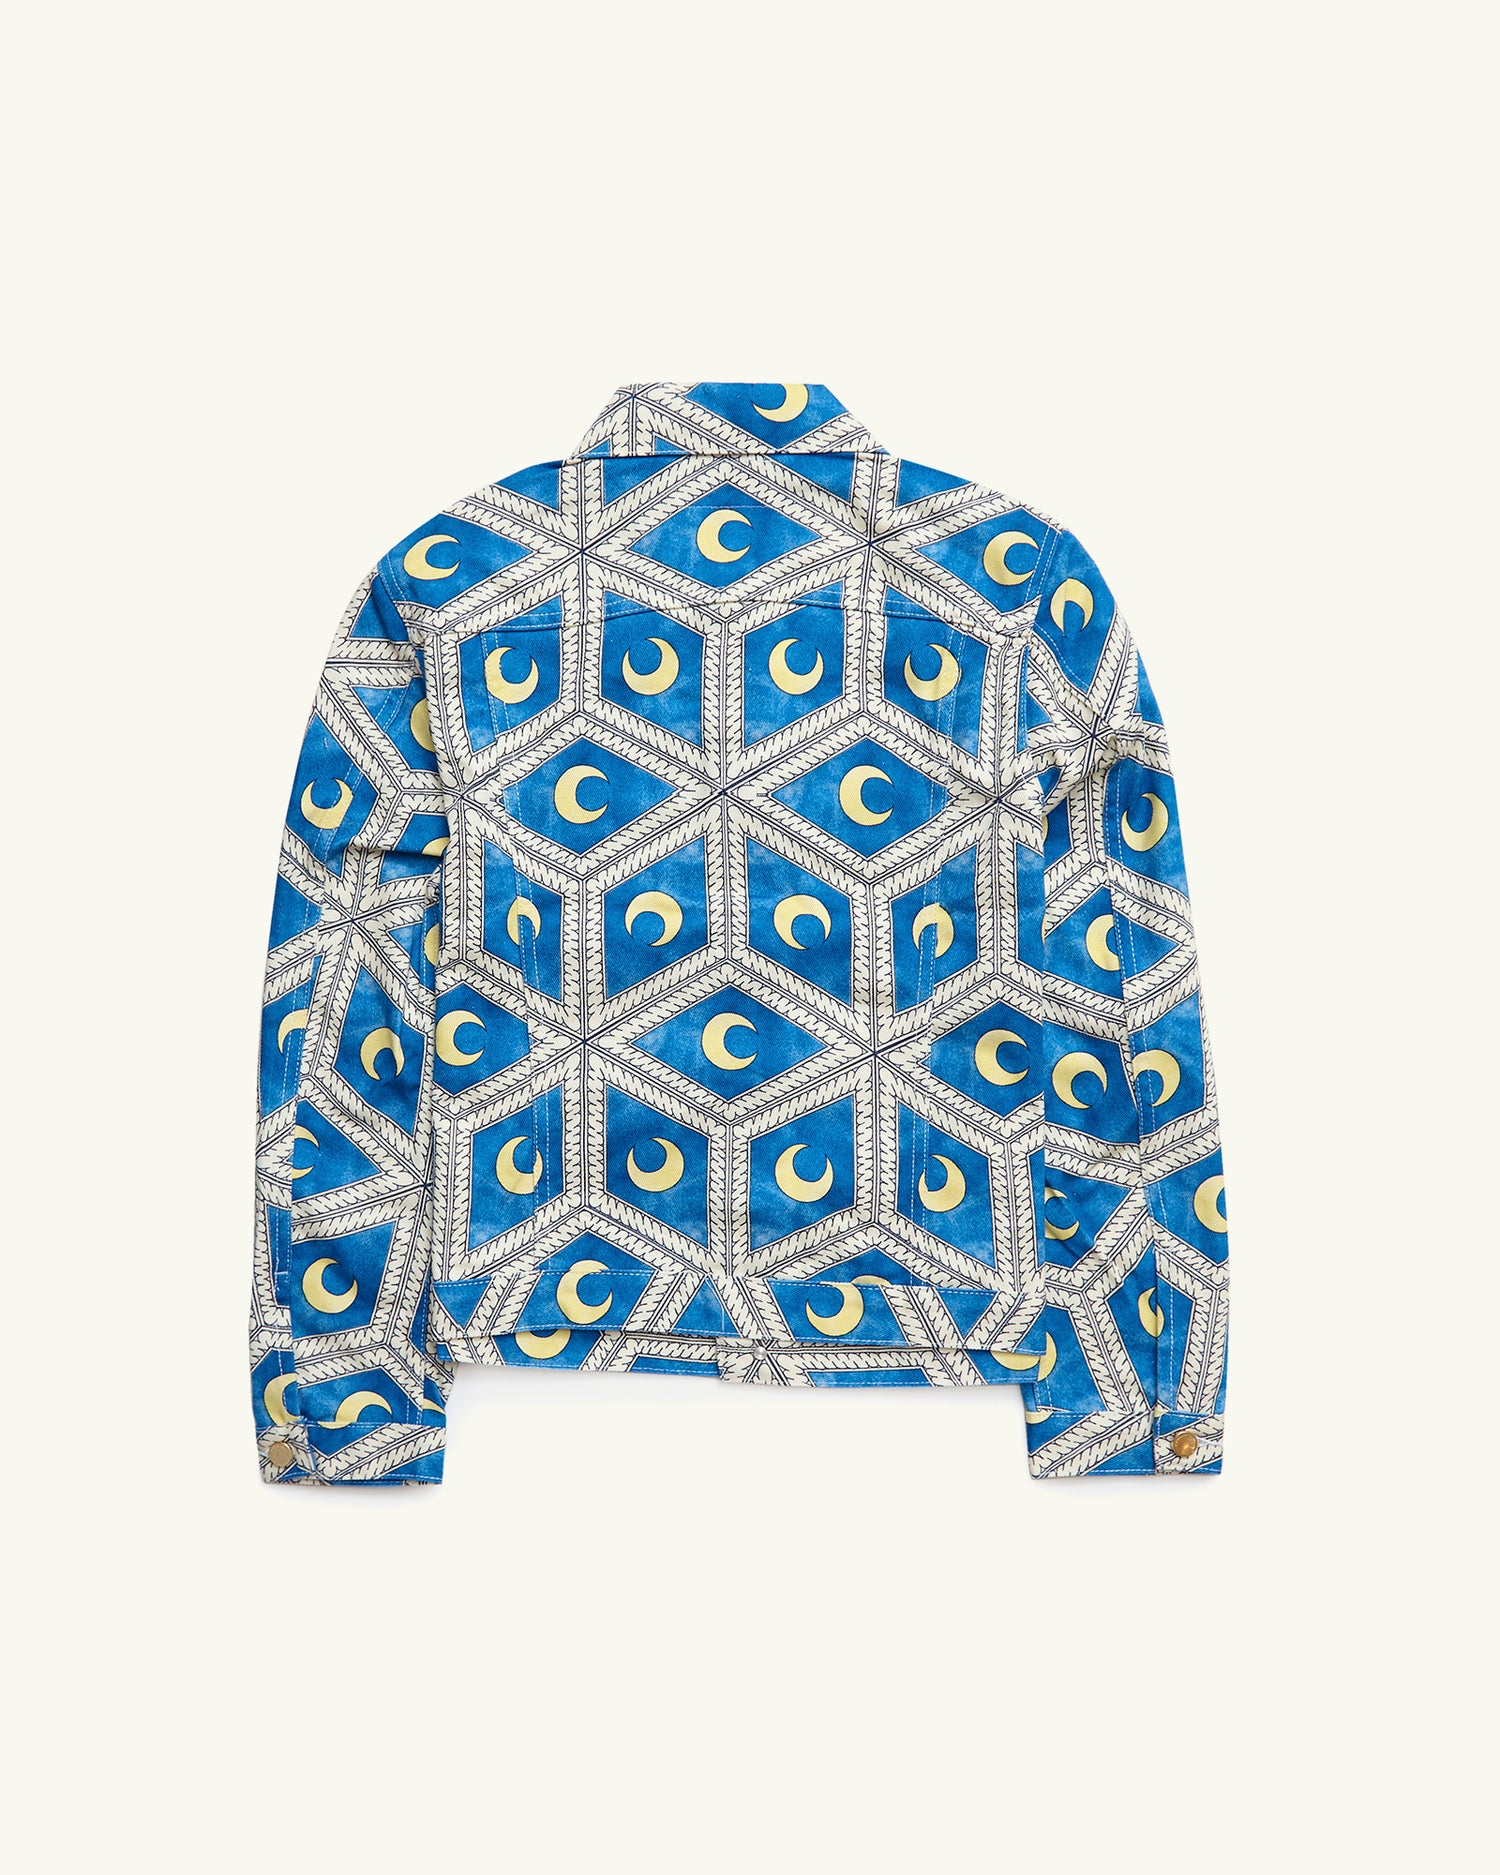 PRINTED DENIM JACKET MOONLIGHT TILES BLUE